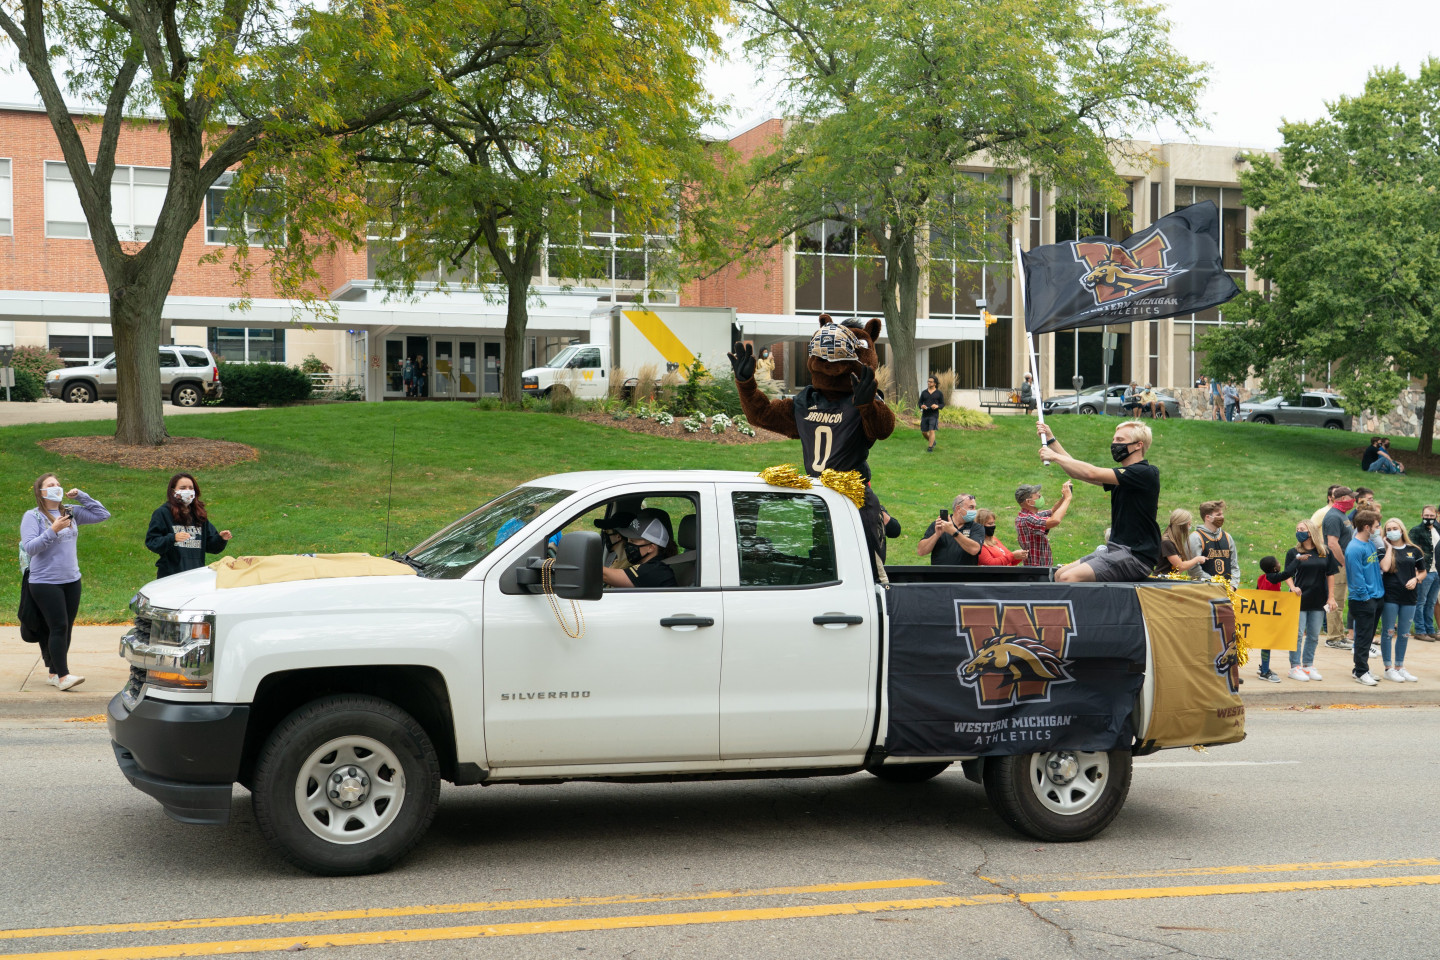 Buster Bronco rides in a truck during the parade.